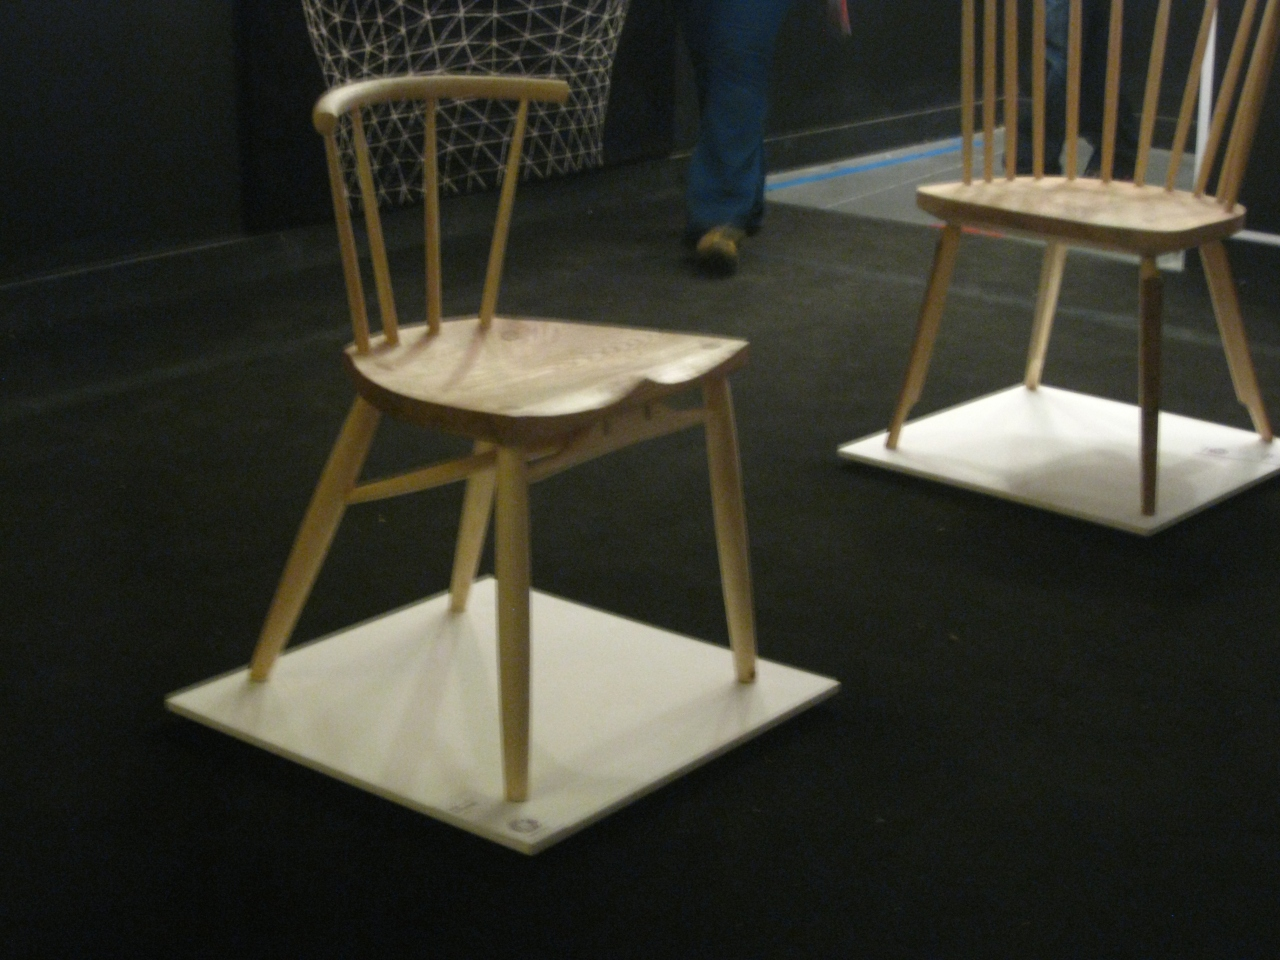 Koji Katsuragi greenwood chair